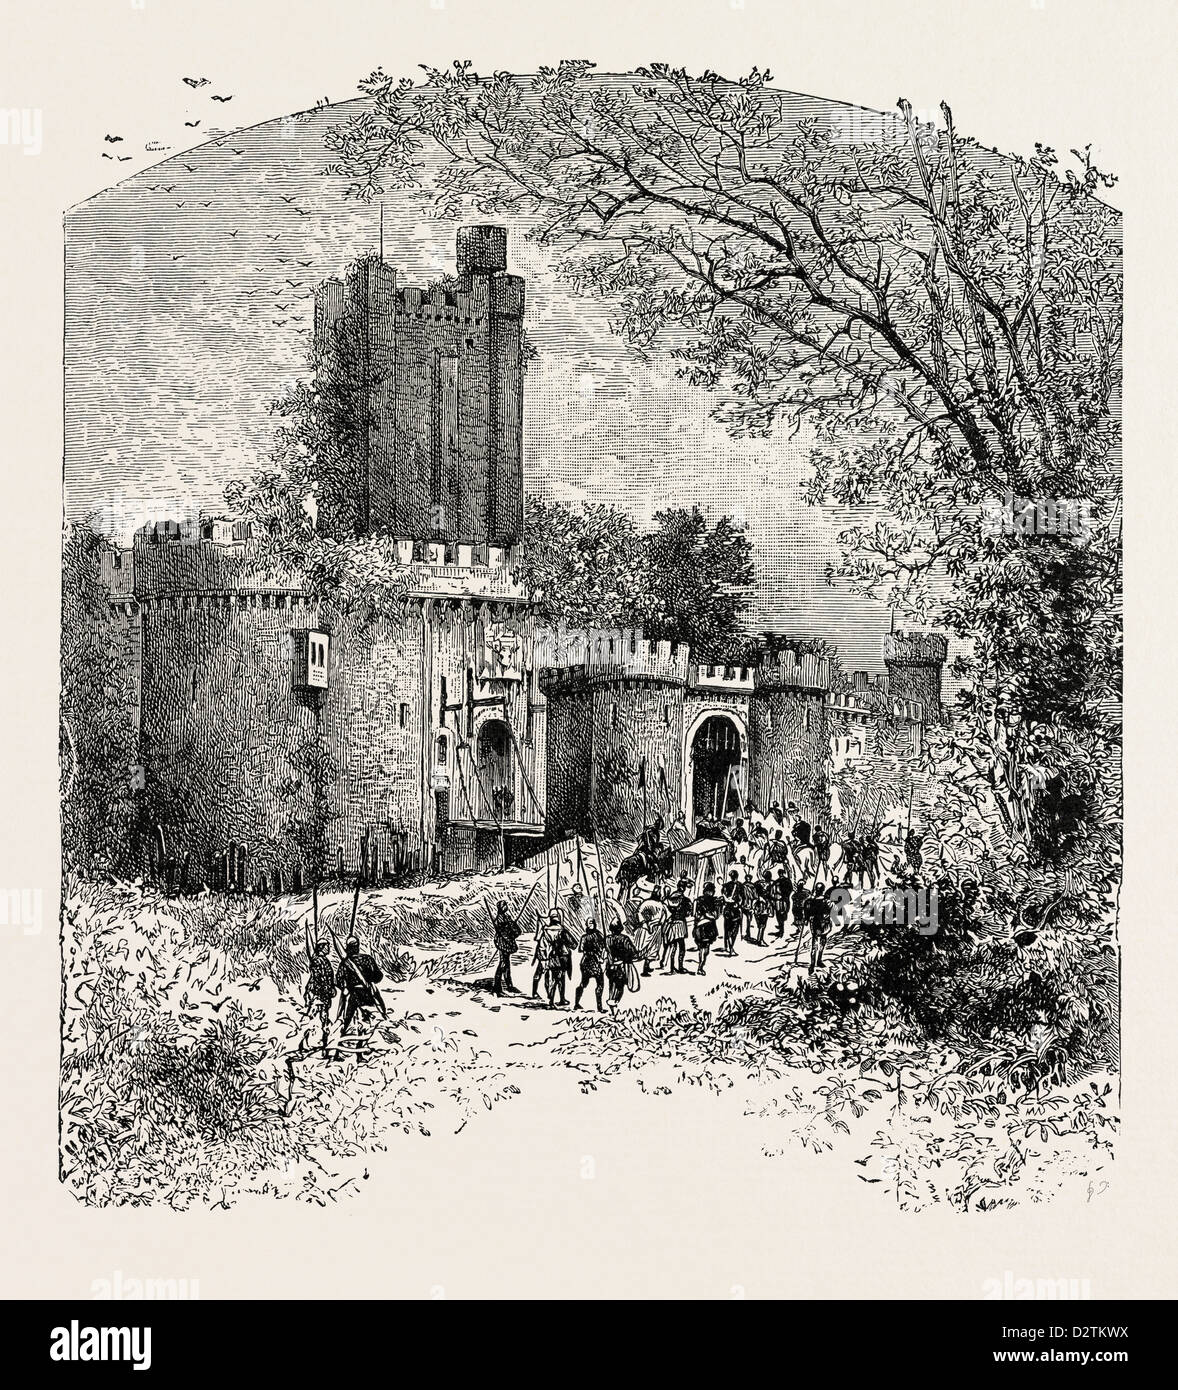 FEUDAL CASTLE IN THE ELEVENTH CENTURY. - Stock Image